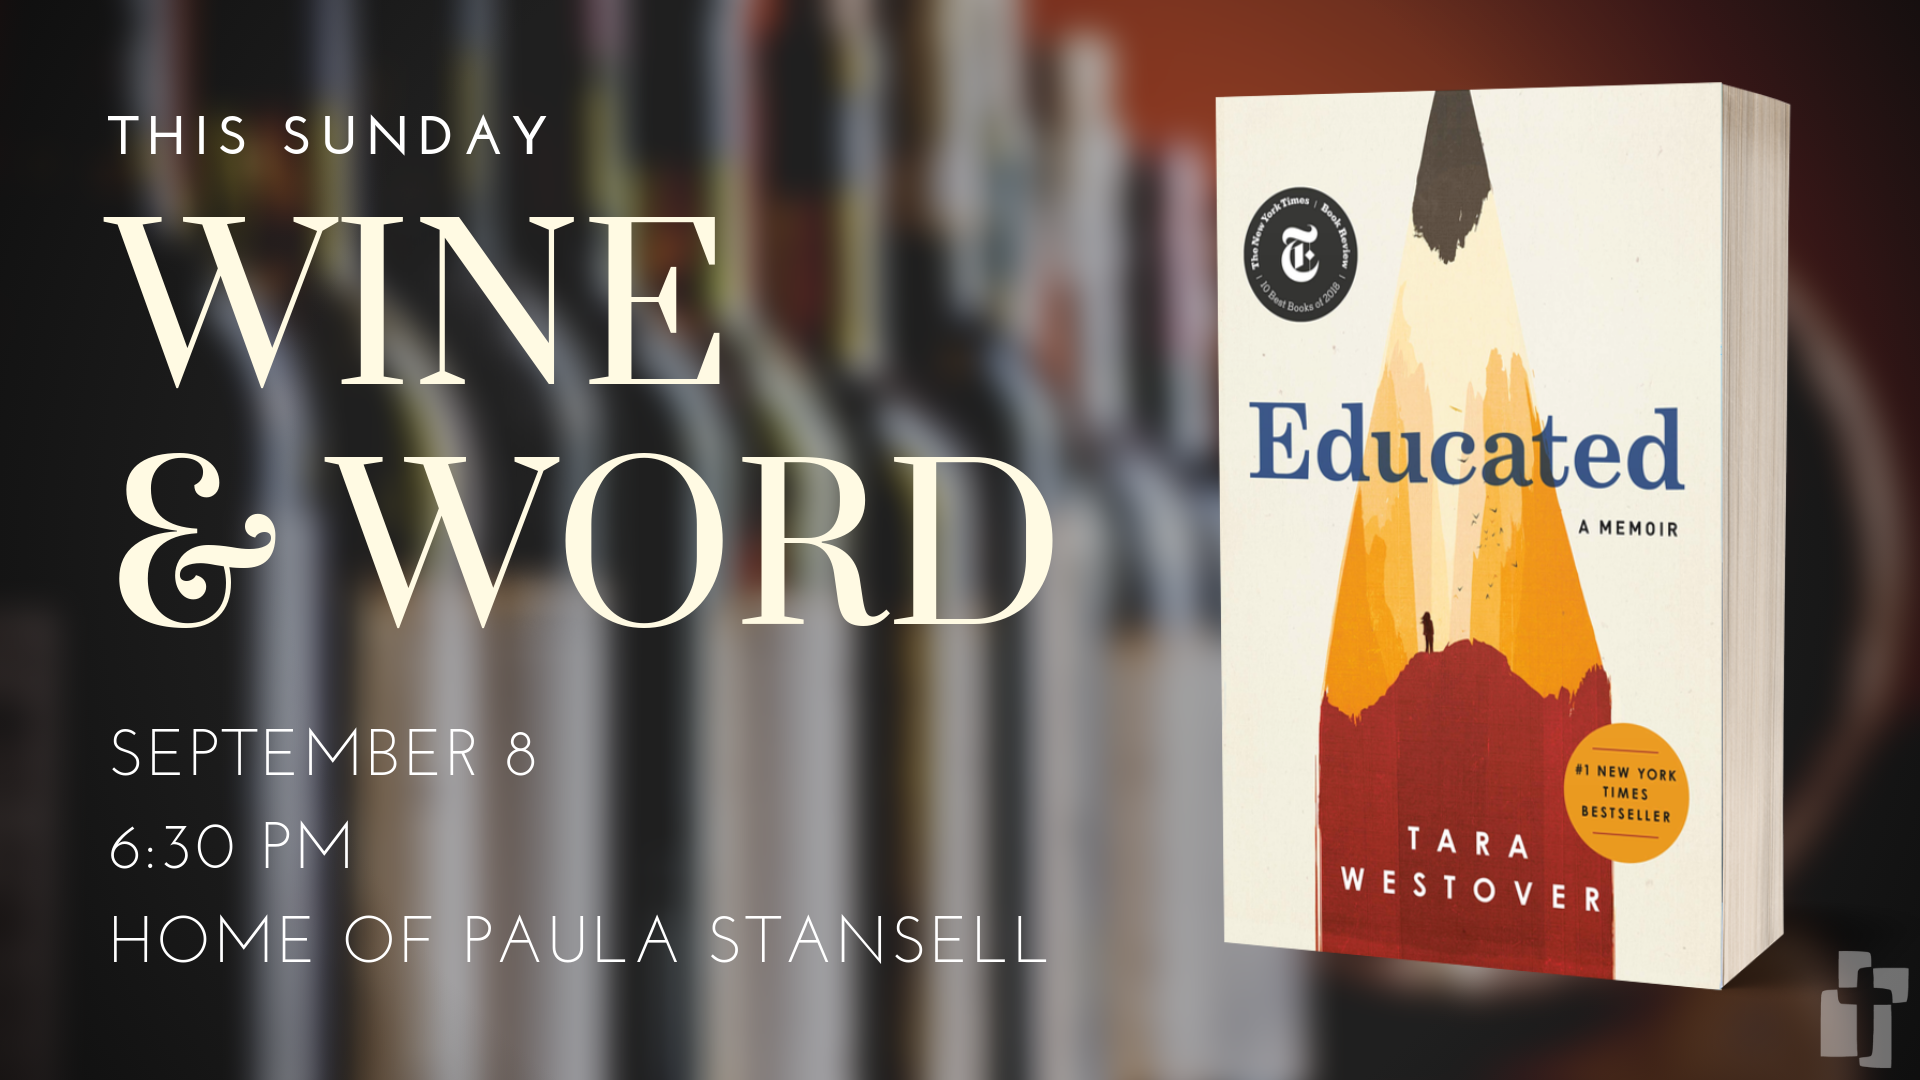 Wine & Word: Sunday, September 8 at 6:30